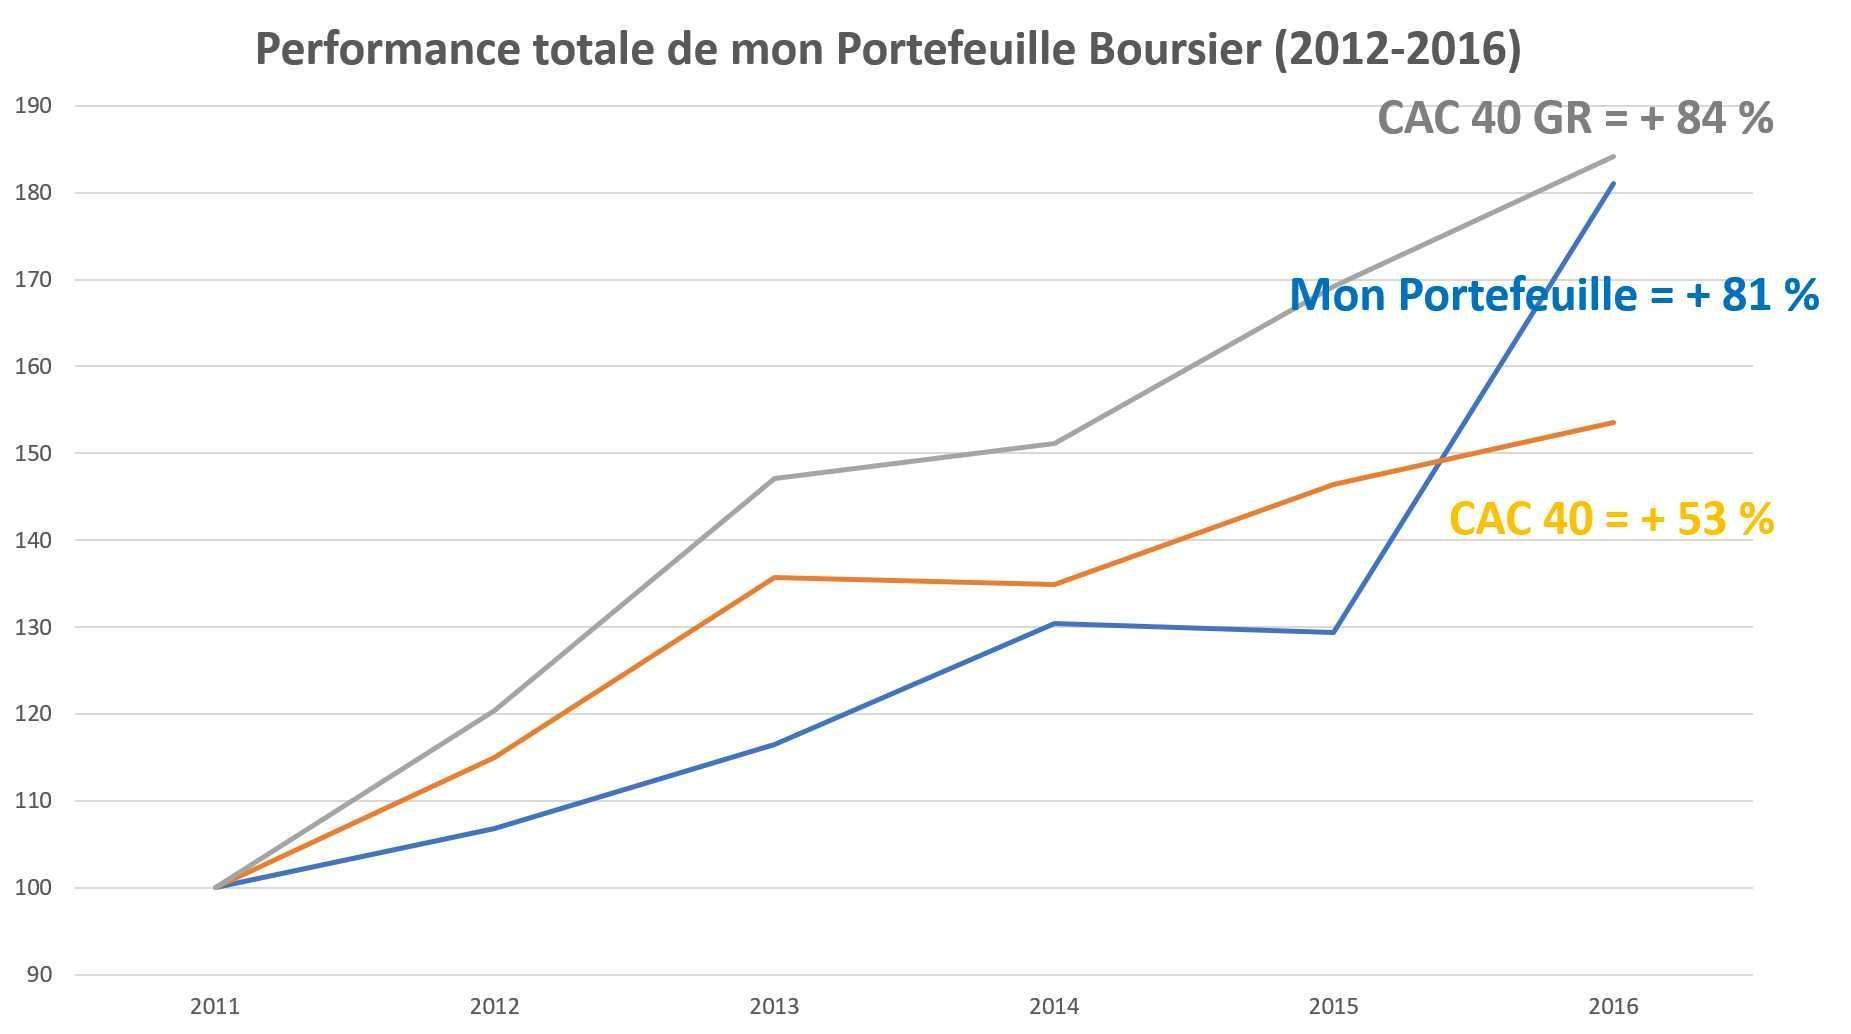 PerformanceBourse2012_2016.jpg